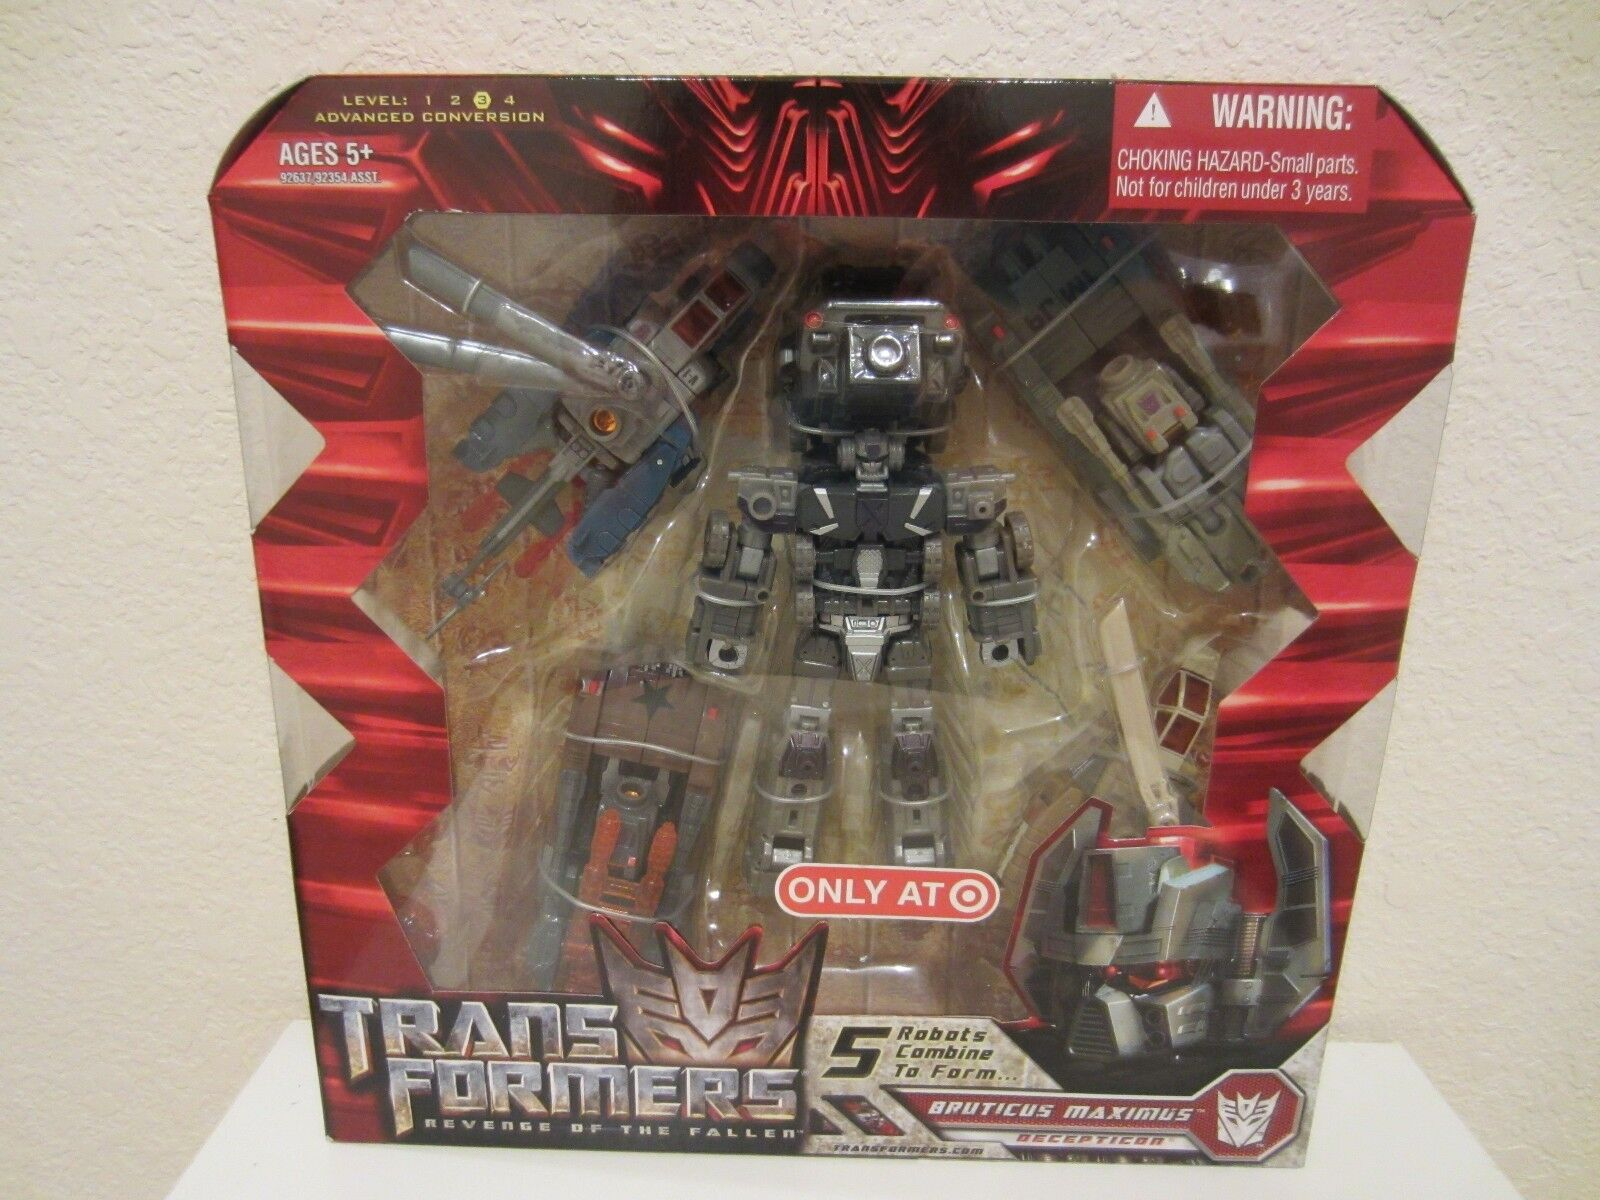 Transformers movie 5 Robots Combine to Form Decepticon Bruticus Maximus new MISB